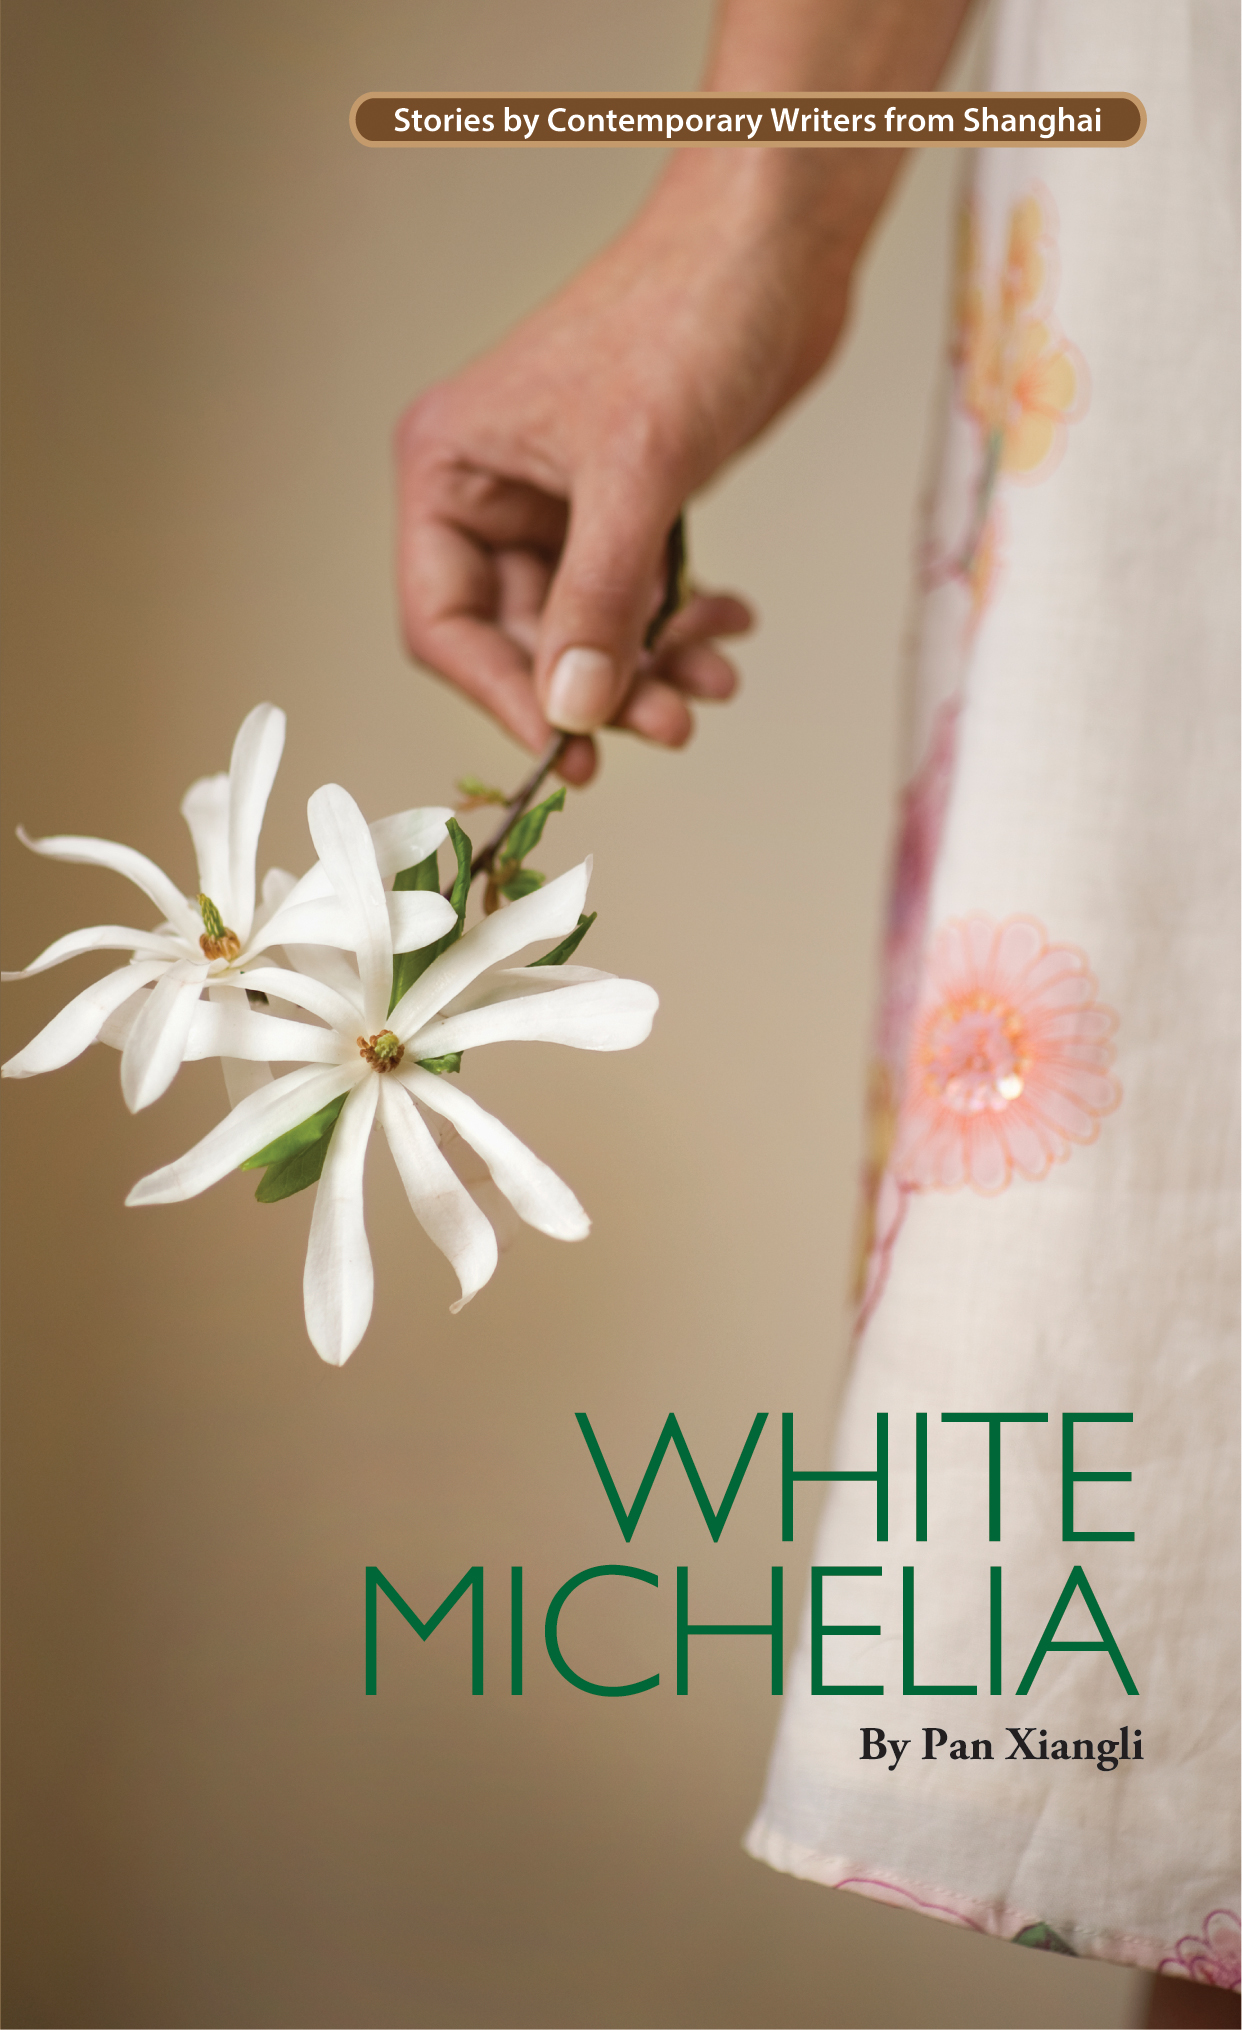 White-michelia-9781602202429_hr